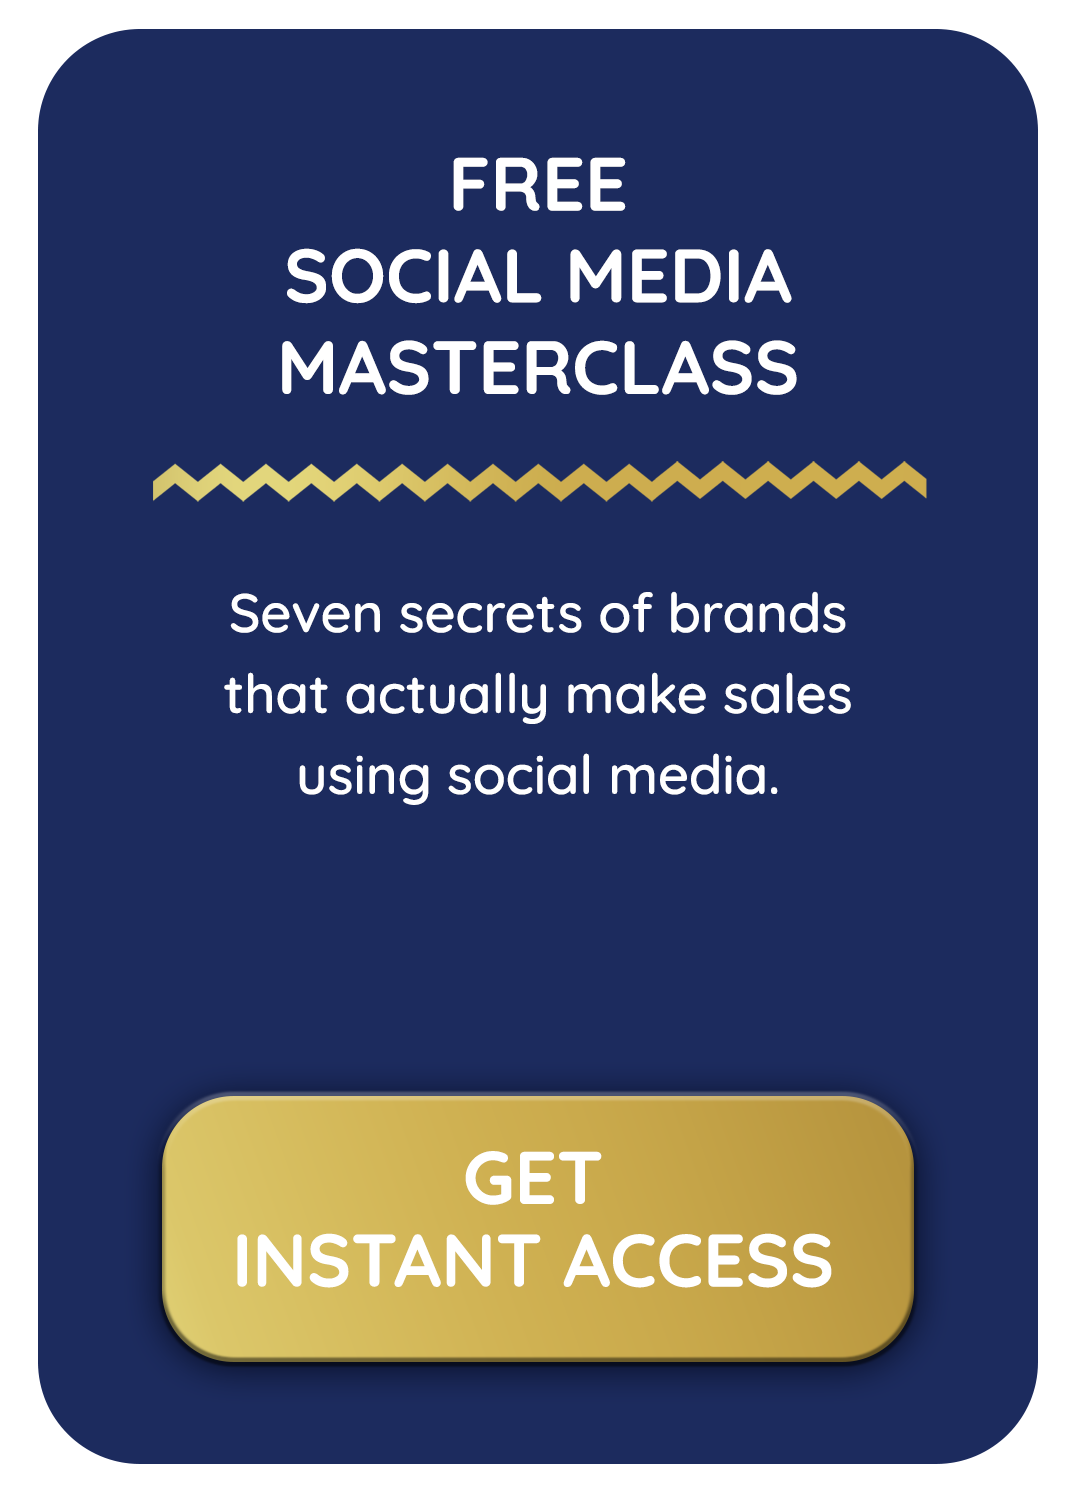 Free social media masterclass by Jodie Cook